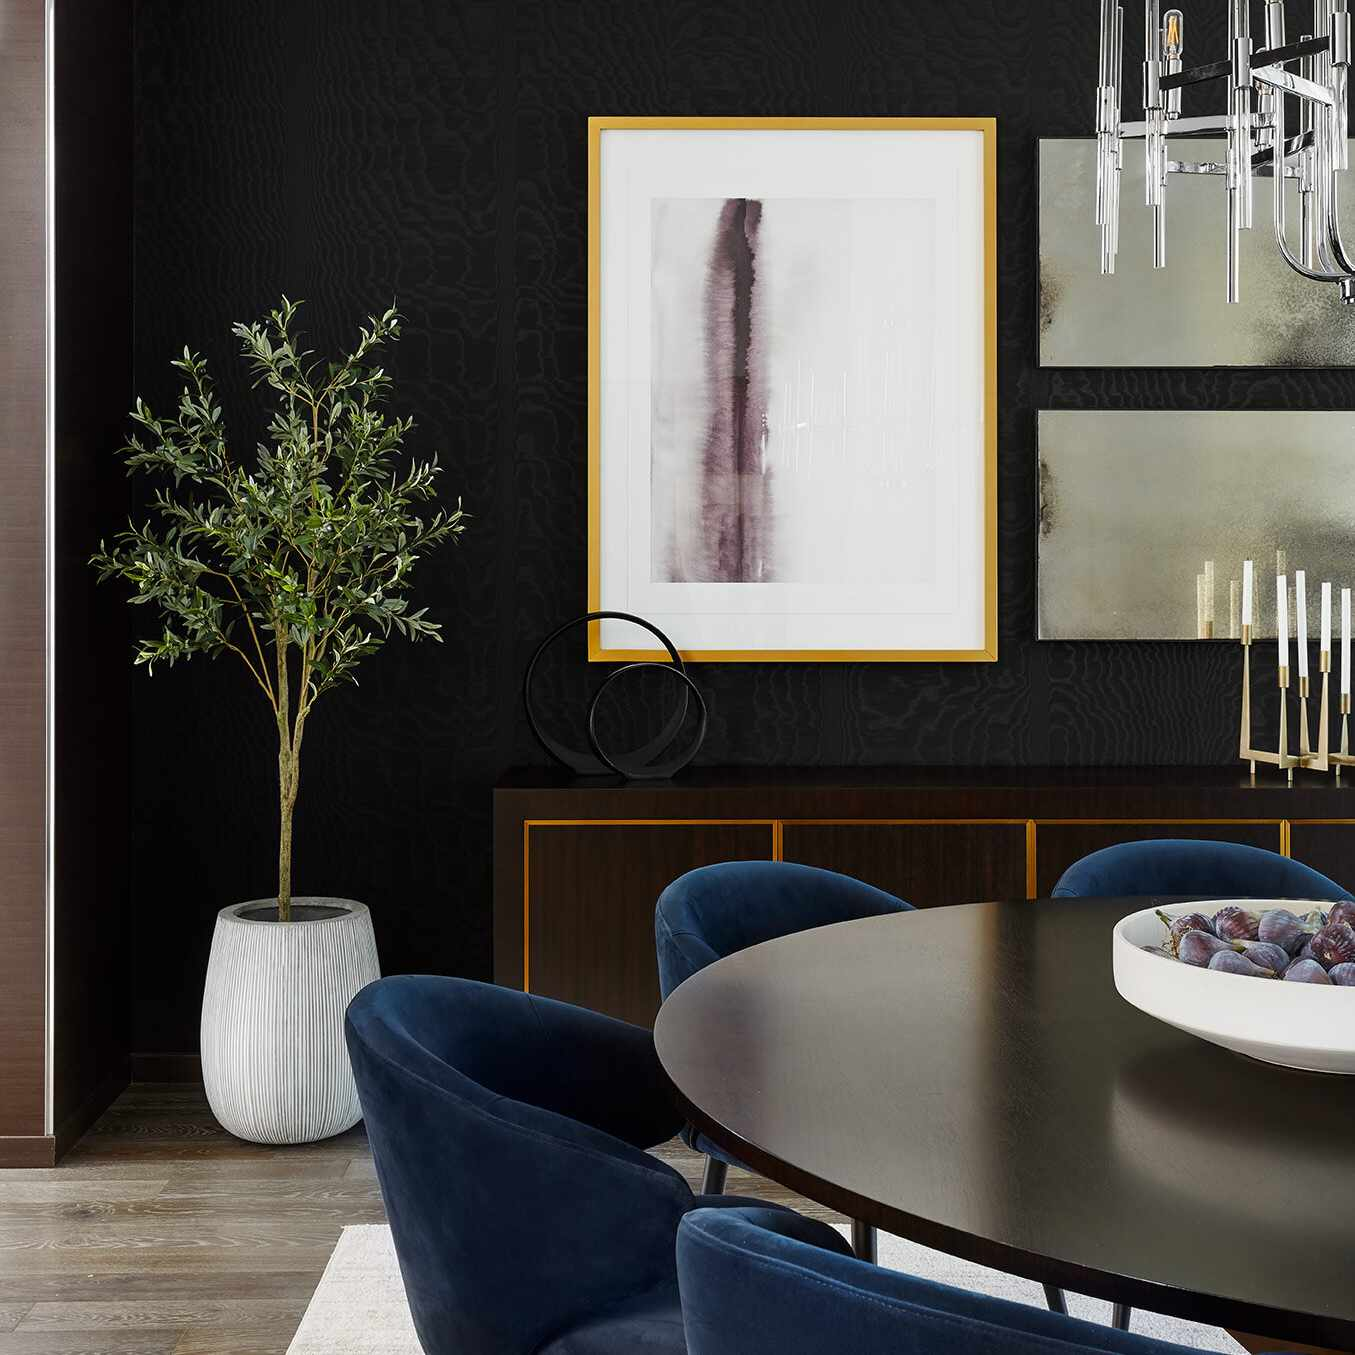 A dining room decorated with black walls, a black table, navy chairs, and a crisp white rug